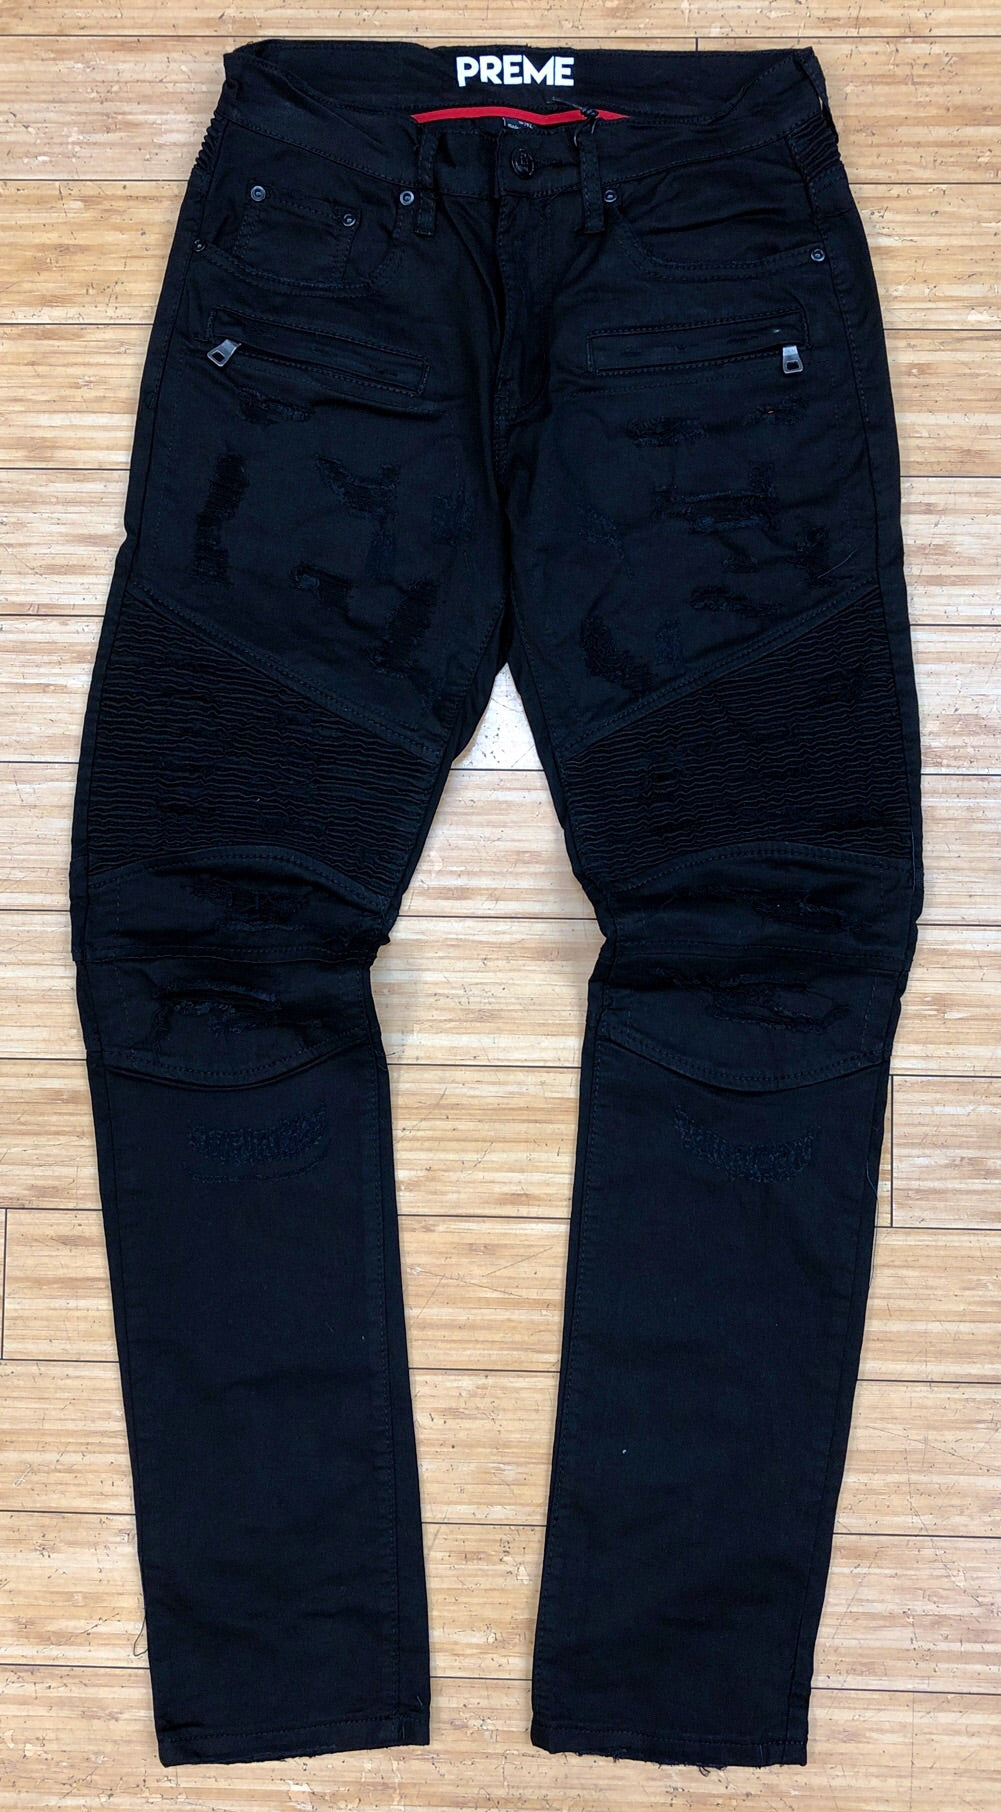 Preme- woven bottom denim jeans